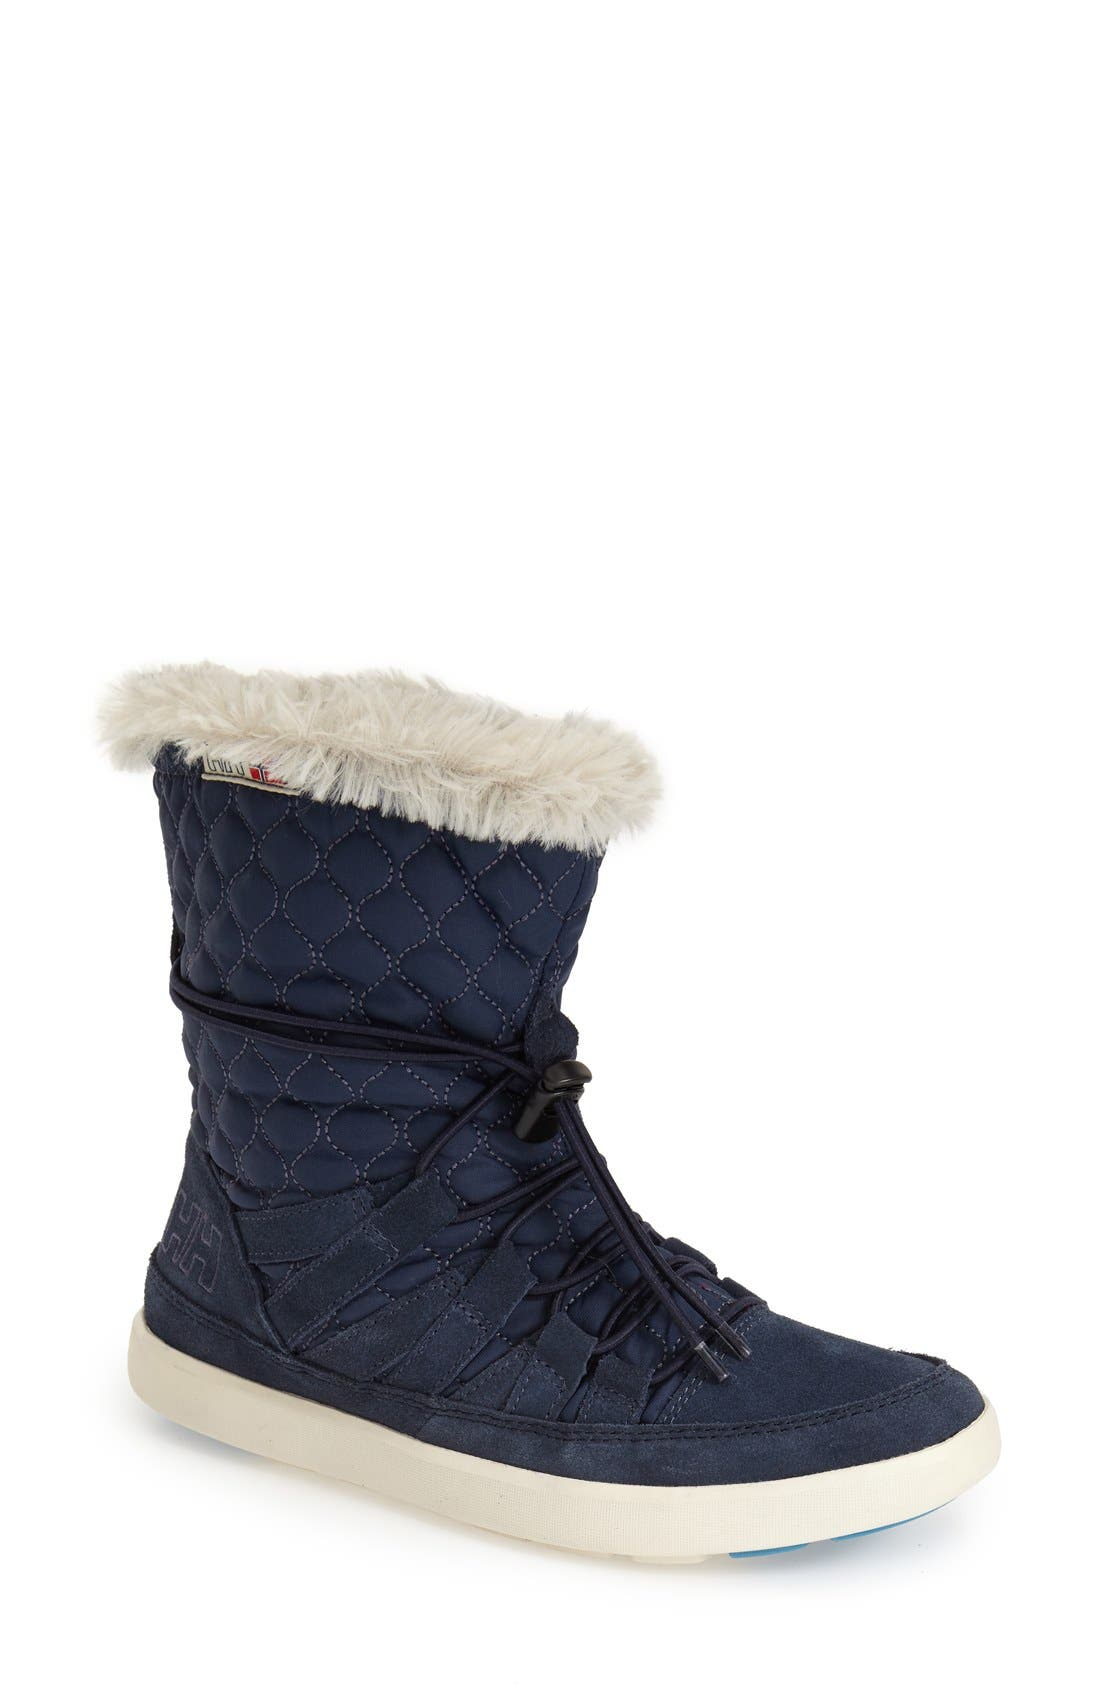 HELLY HANSEN Helly Hansen 'Harriet' Cold Weather Boot